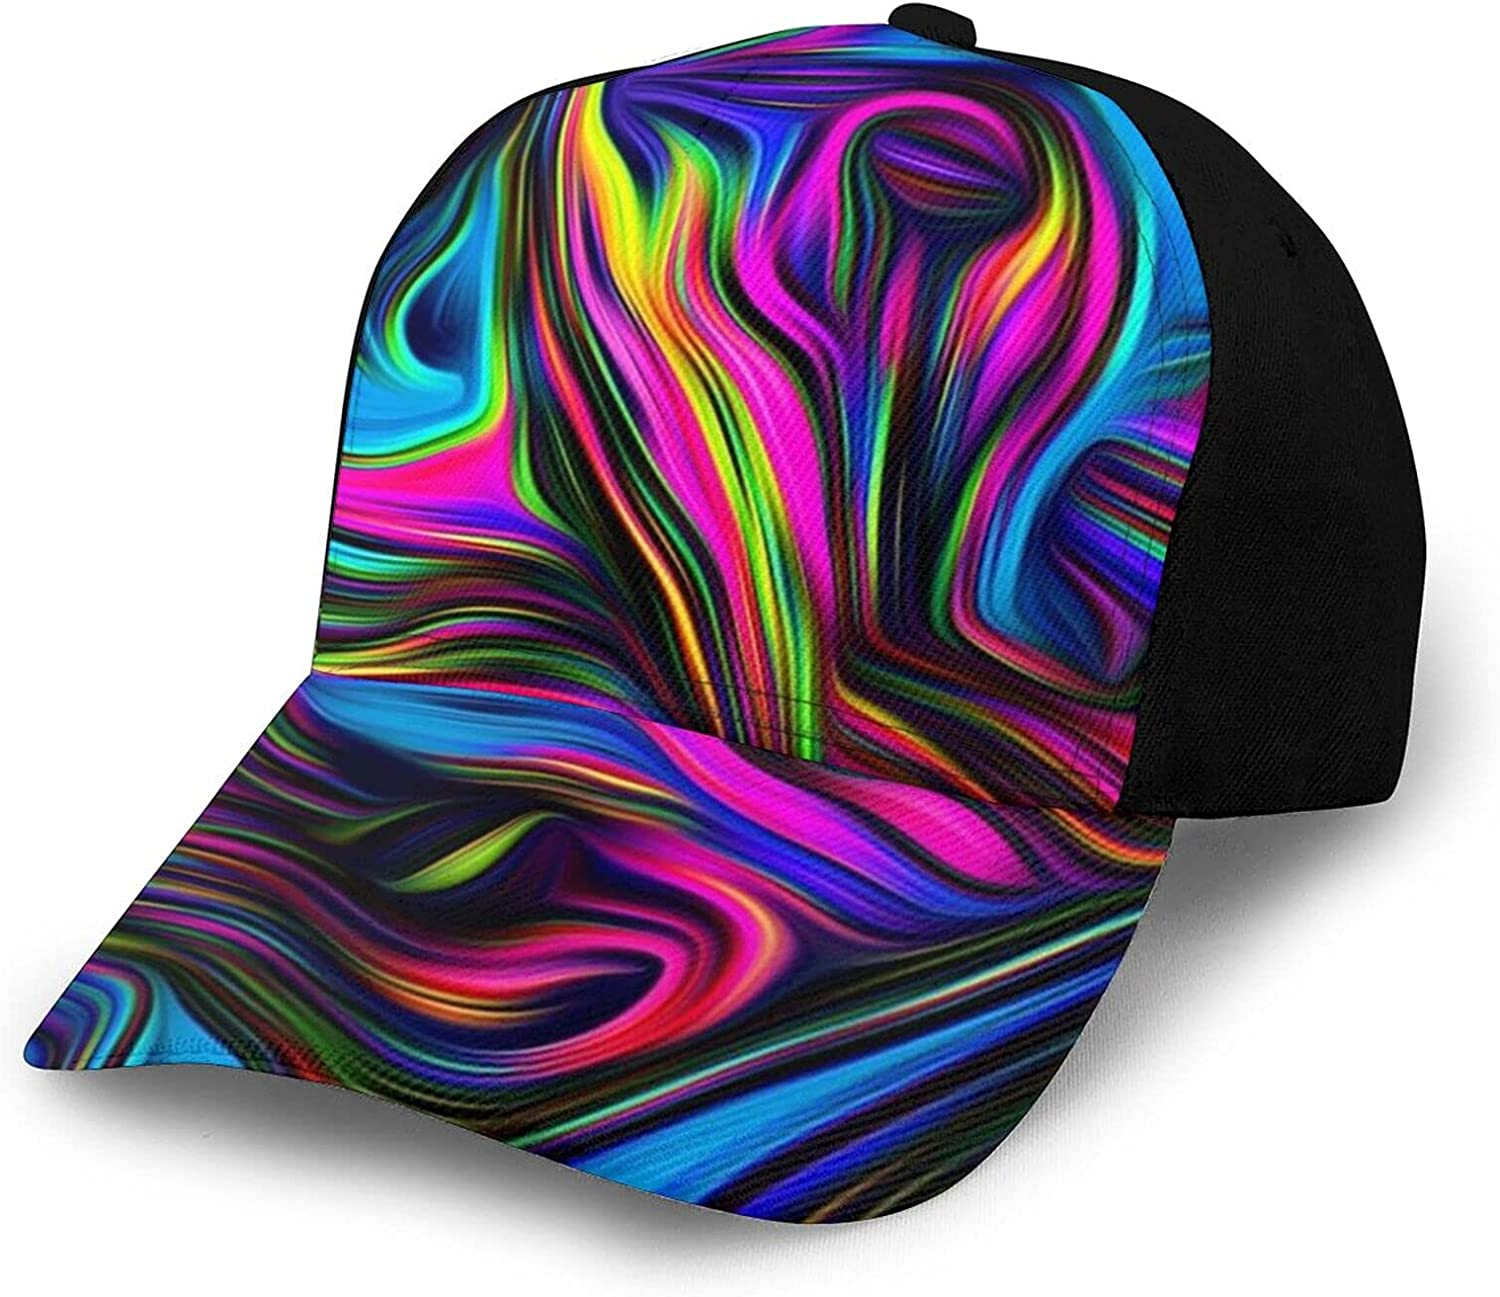 Unisex Baseball Caps Classic Casual Fashion Dad Hat Adjustable Sports Outdoor Cap for Men Women